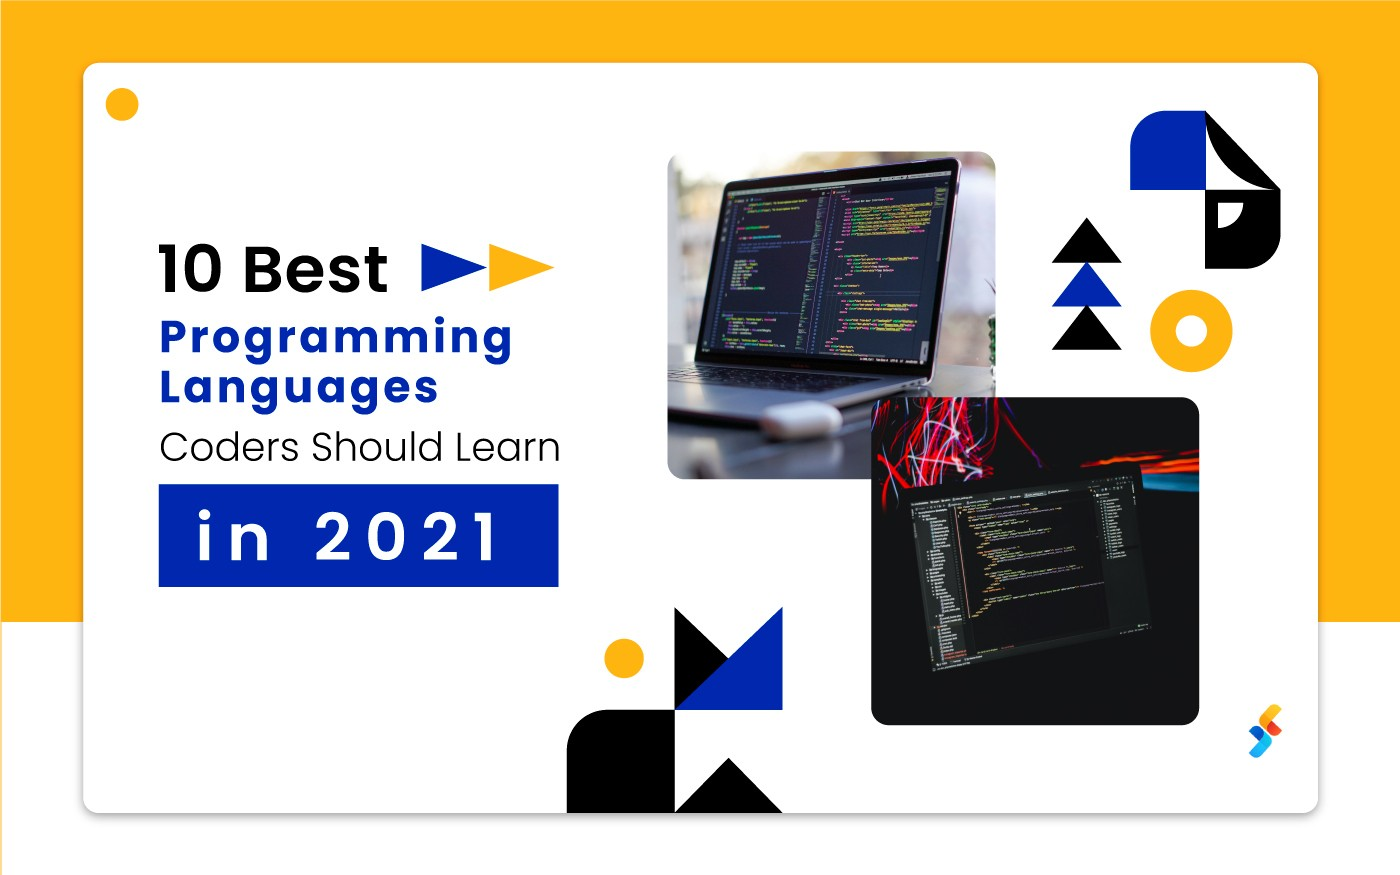 10 Best Programming Languages Coders Should Learn in 2021